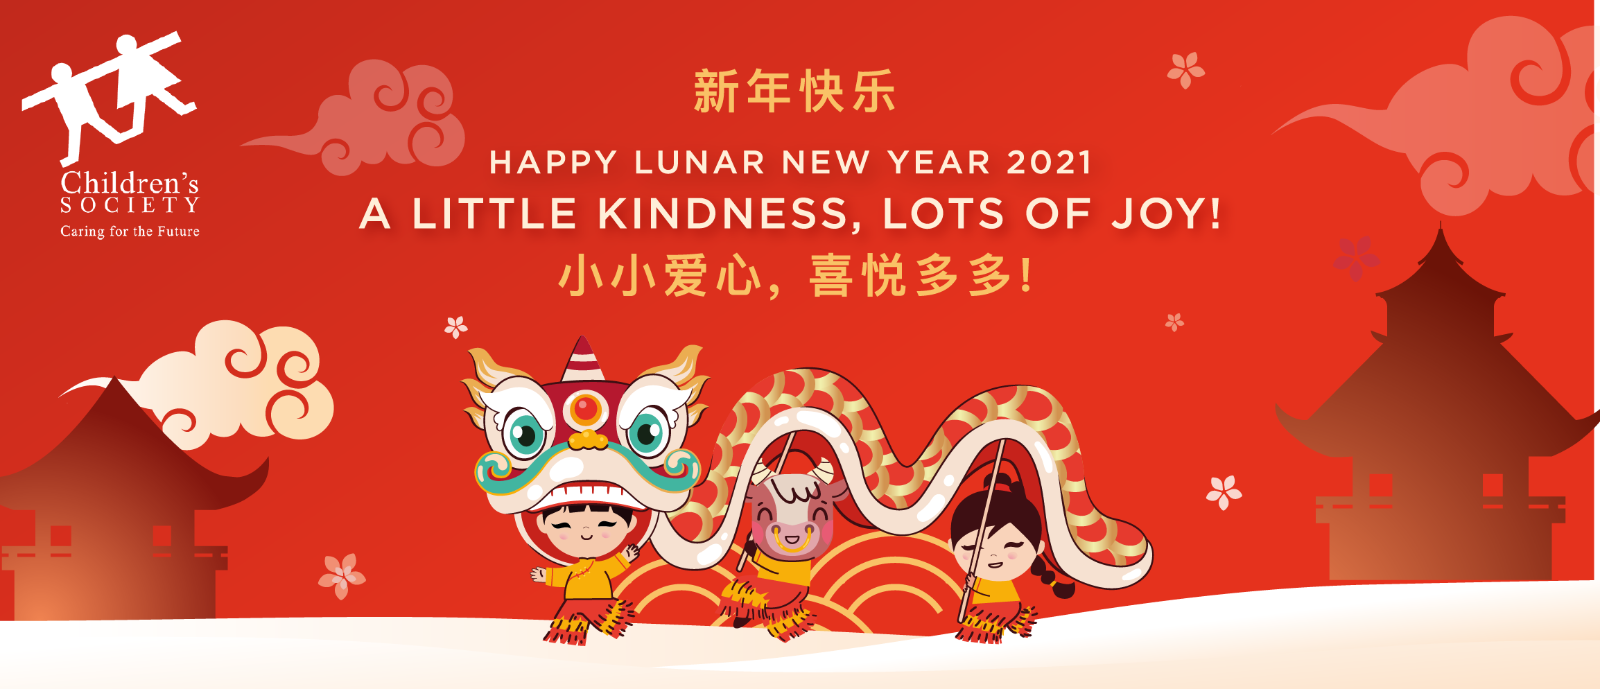 A Little Kindness, Lots of Joy! – Chinese New Year 2021